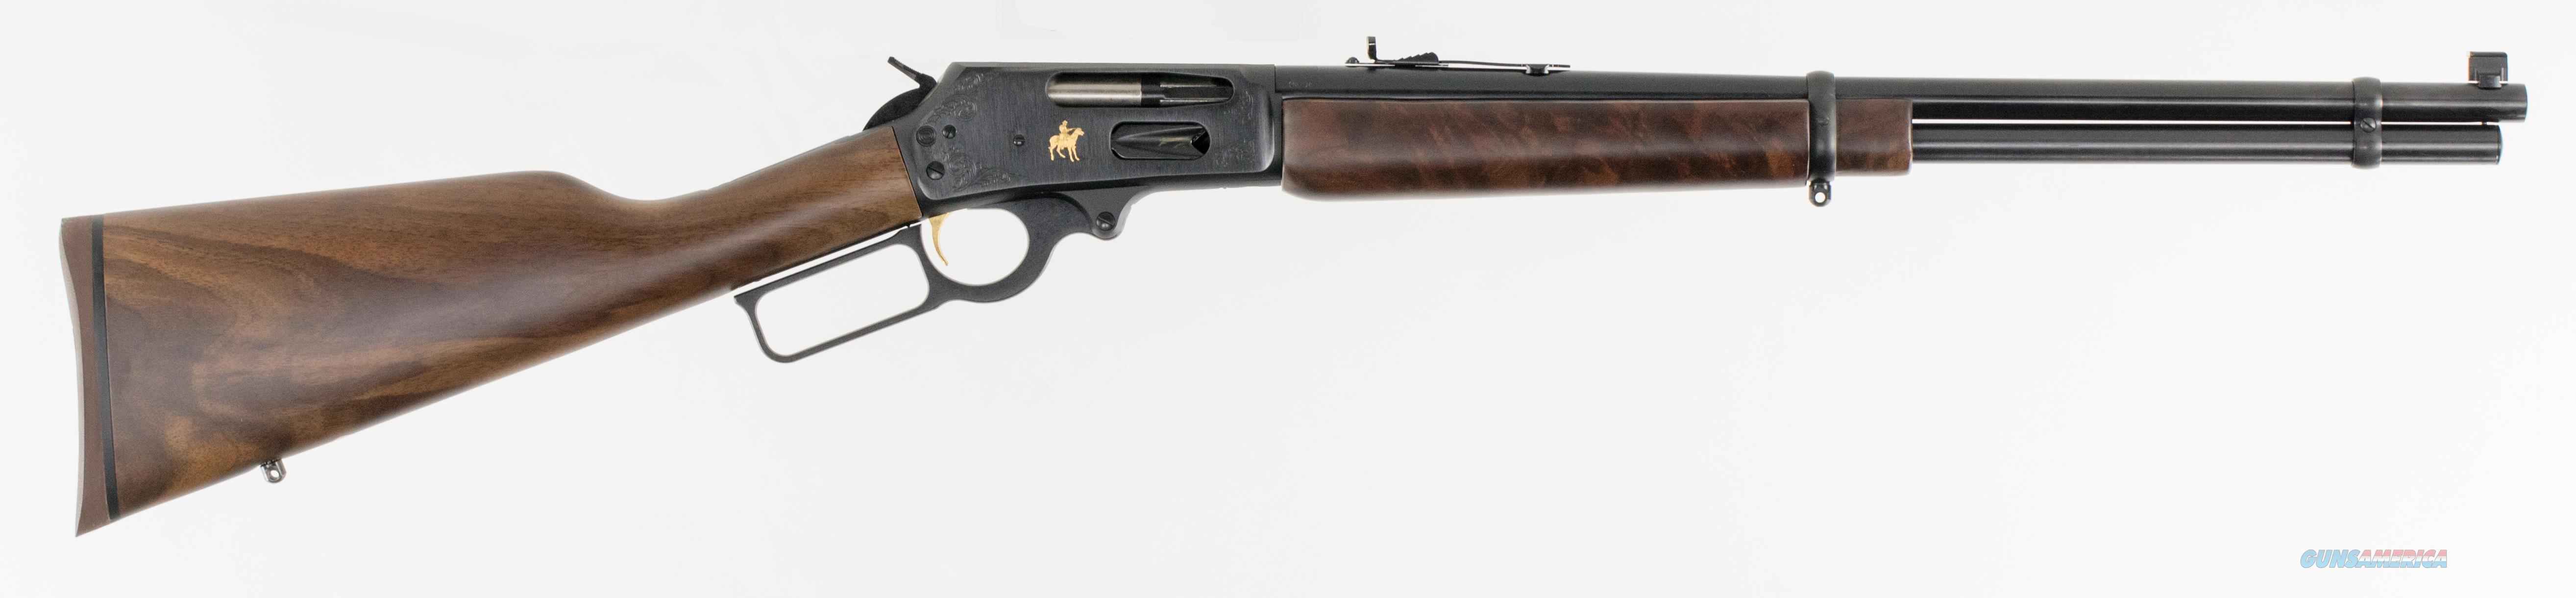 "Marlin 70534 336 Texan Deluxe Lever 30-30 Winchester 20"" 6+1 American Black Walnut Stk Blued  Guns > Rifles > MN Misc Rifles"